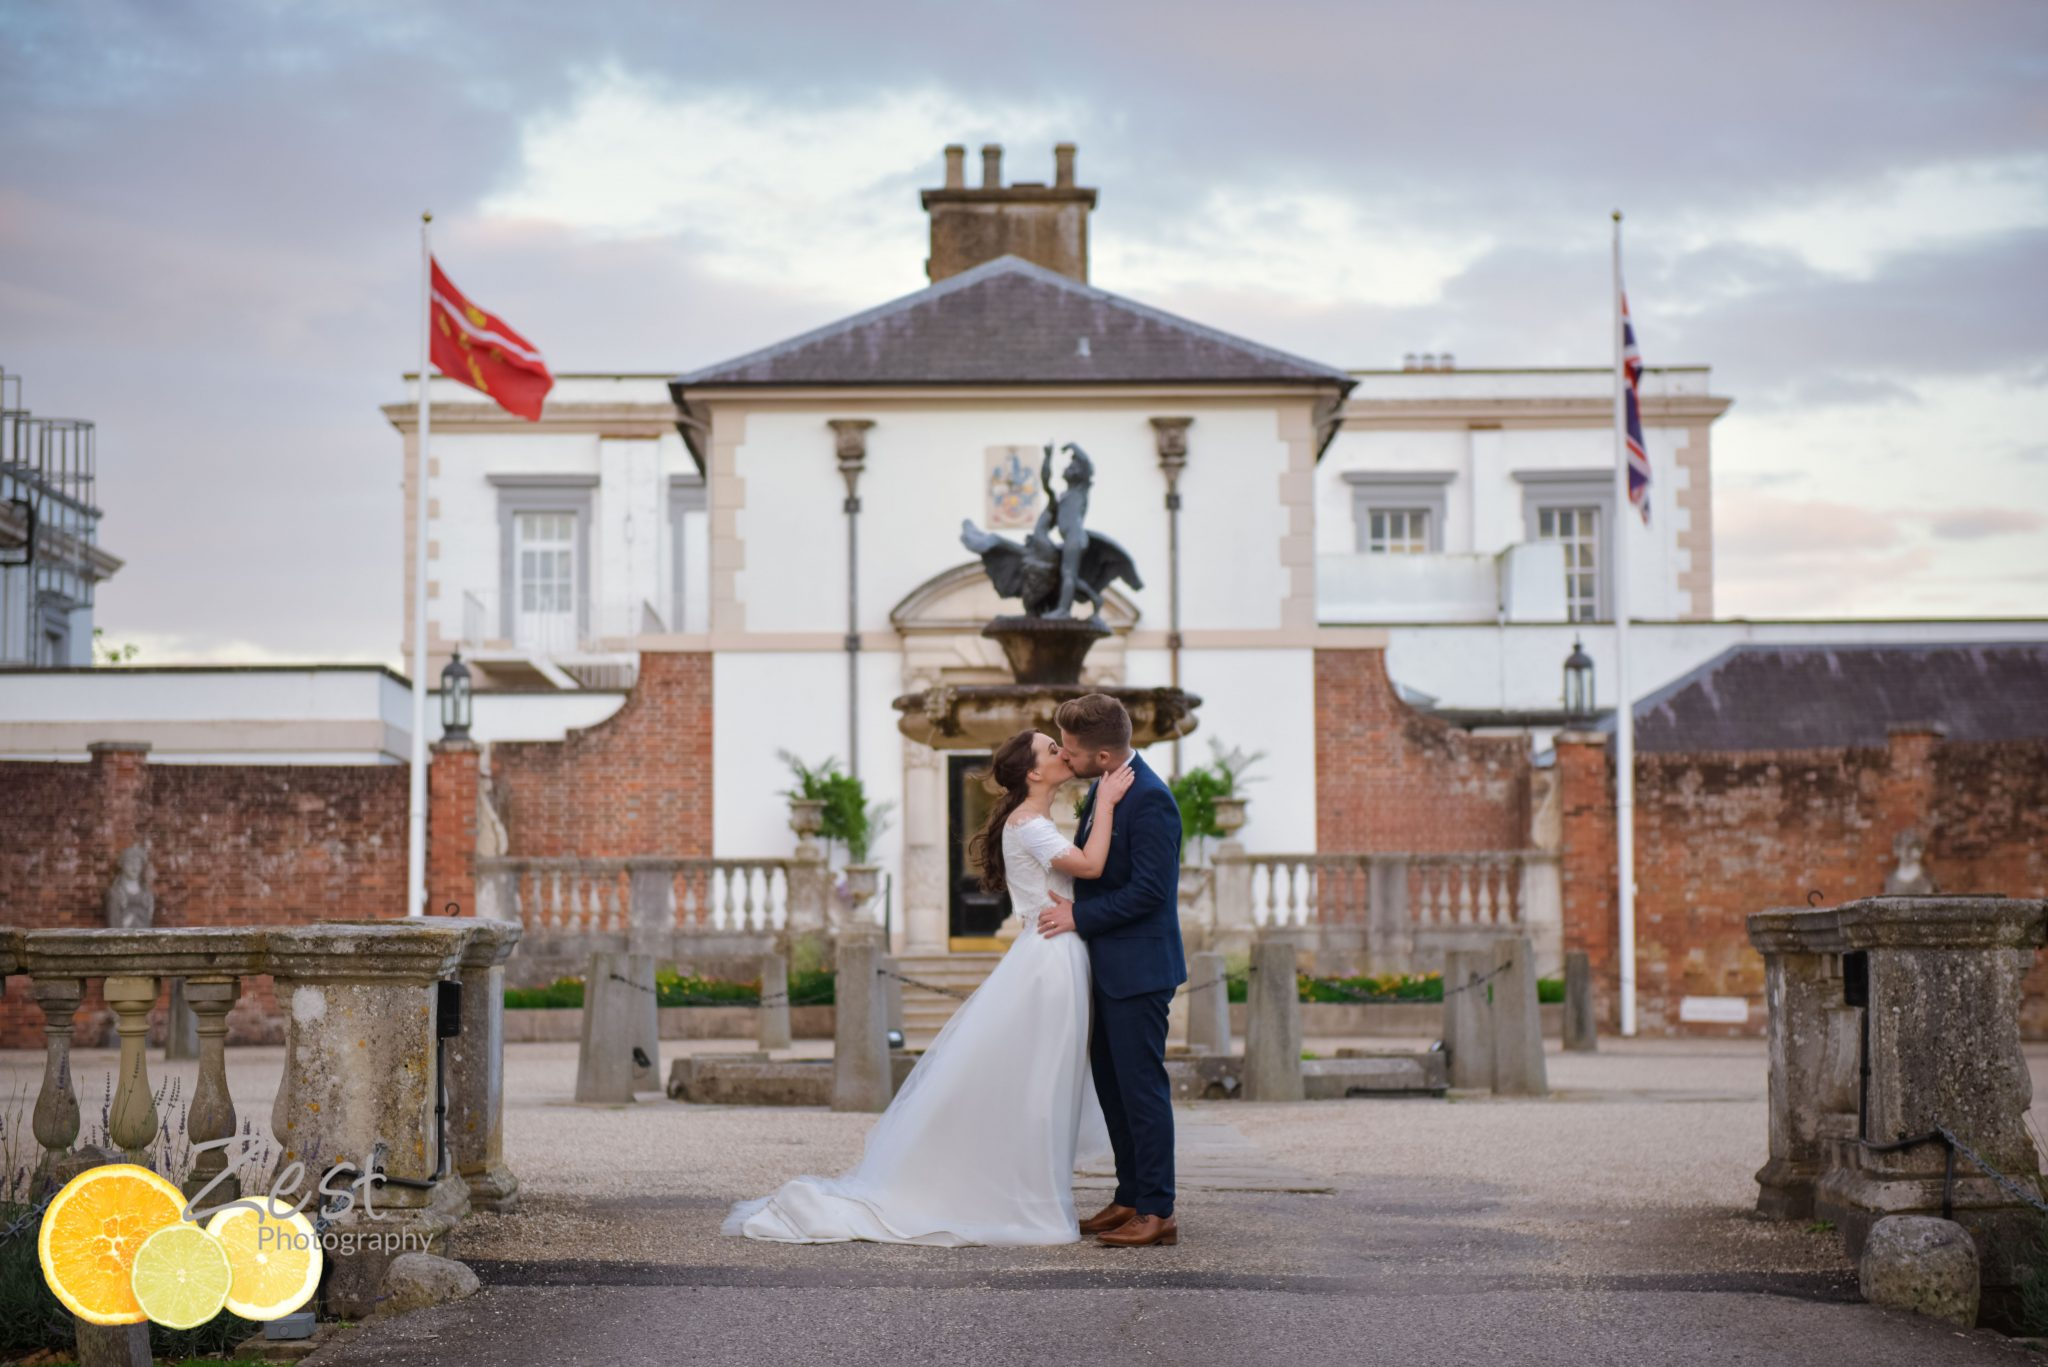 wedding at buxted park in east sussex